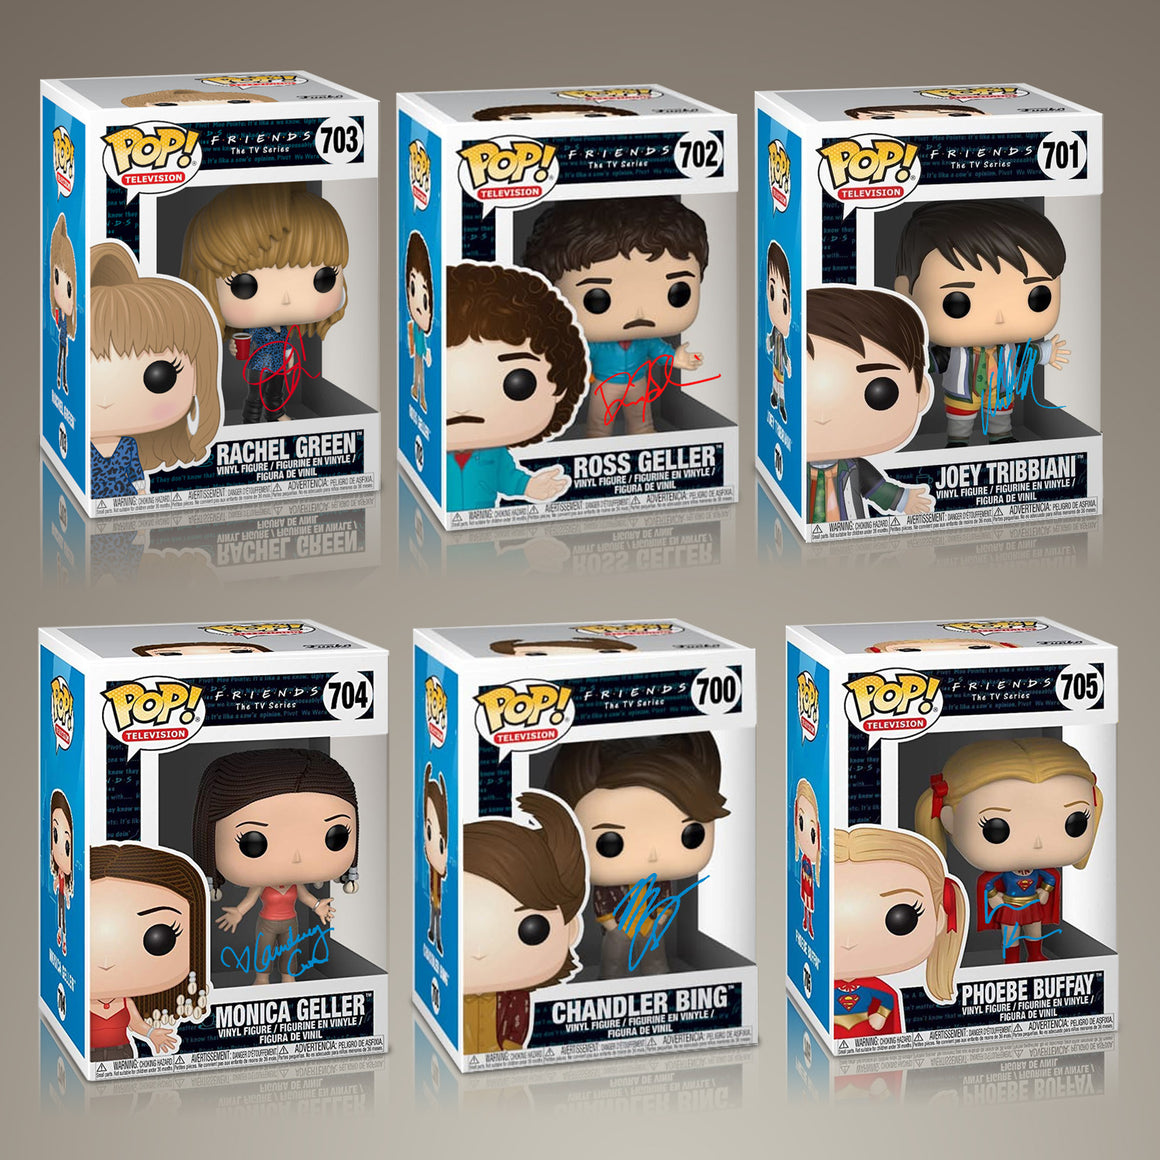 Friends- Hand-Signed Set of 6 Funko POPS, by Jennifer Aniston, Courteney Cox, Lisa Kudrow, Matt LeBlanc, Matthew Perry & David Schwimmer